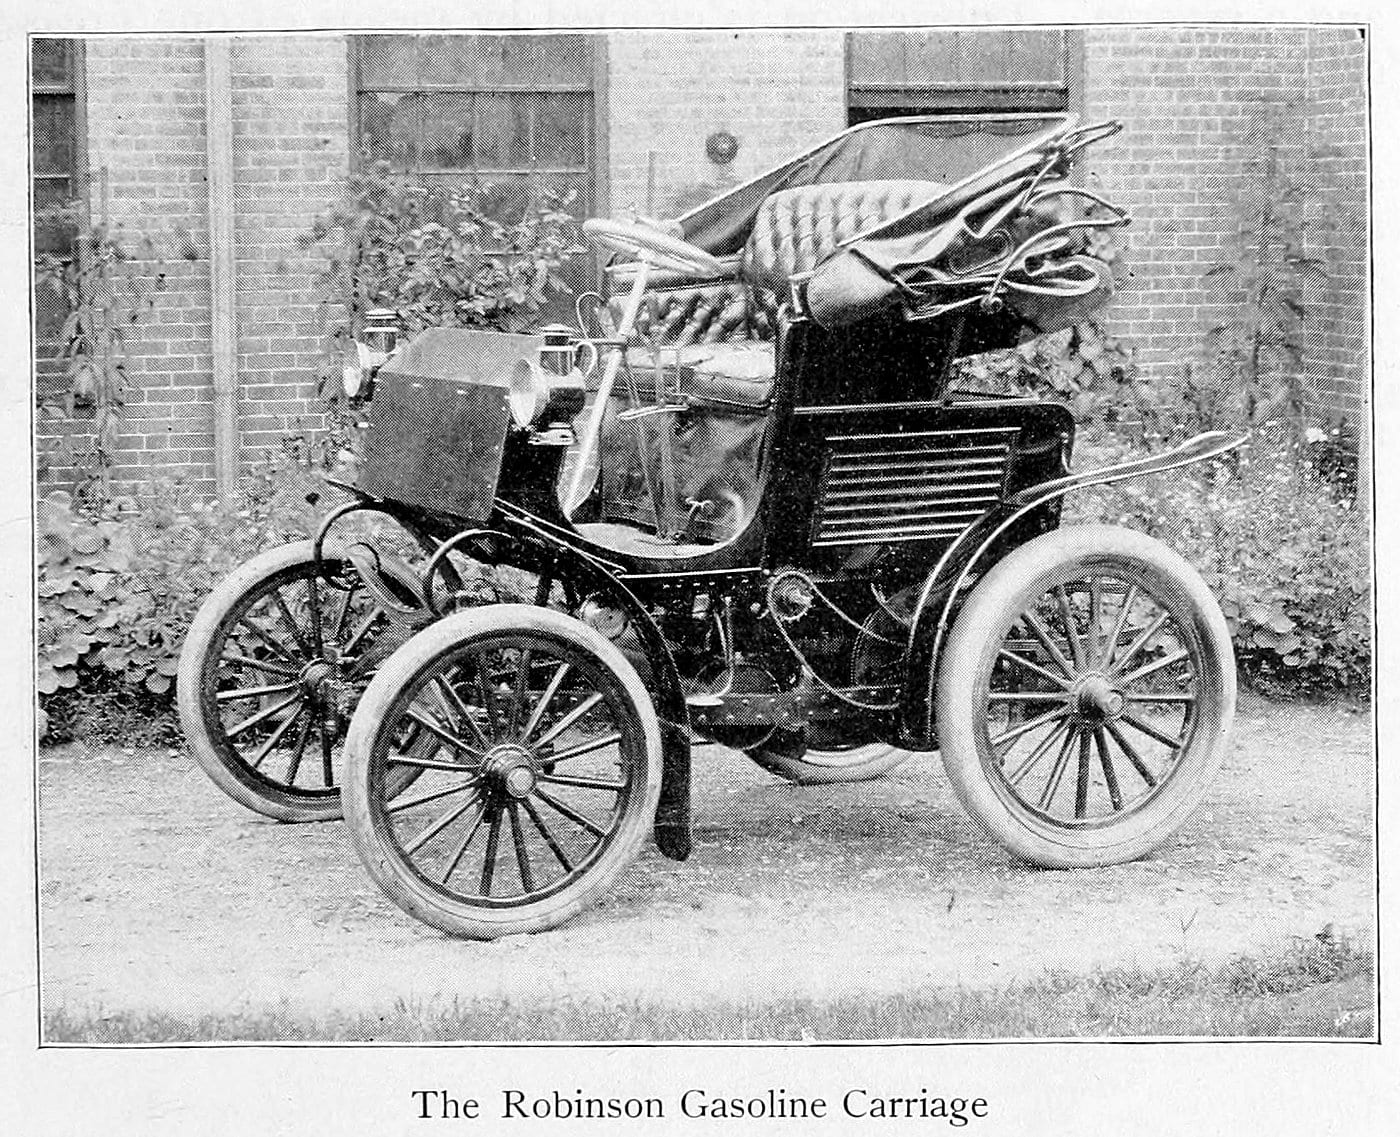 The Robinson gasoline carriage (1900)